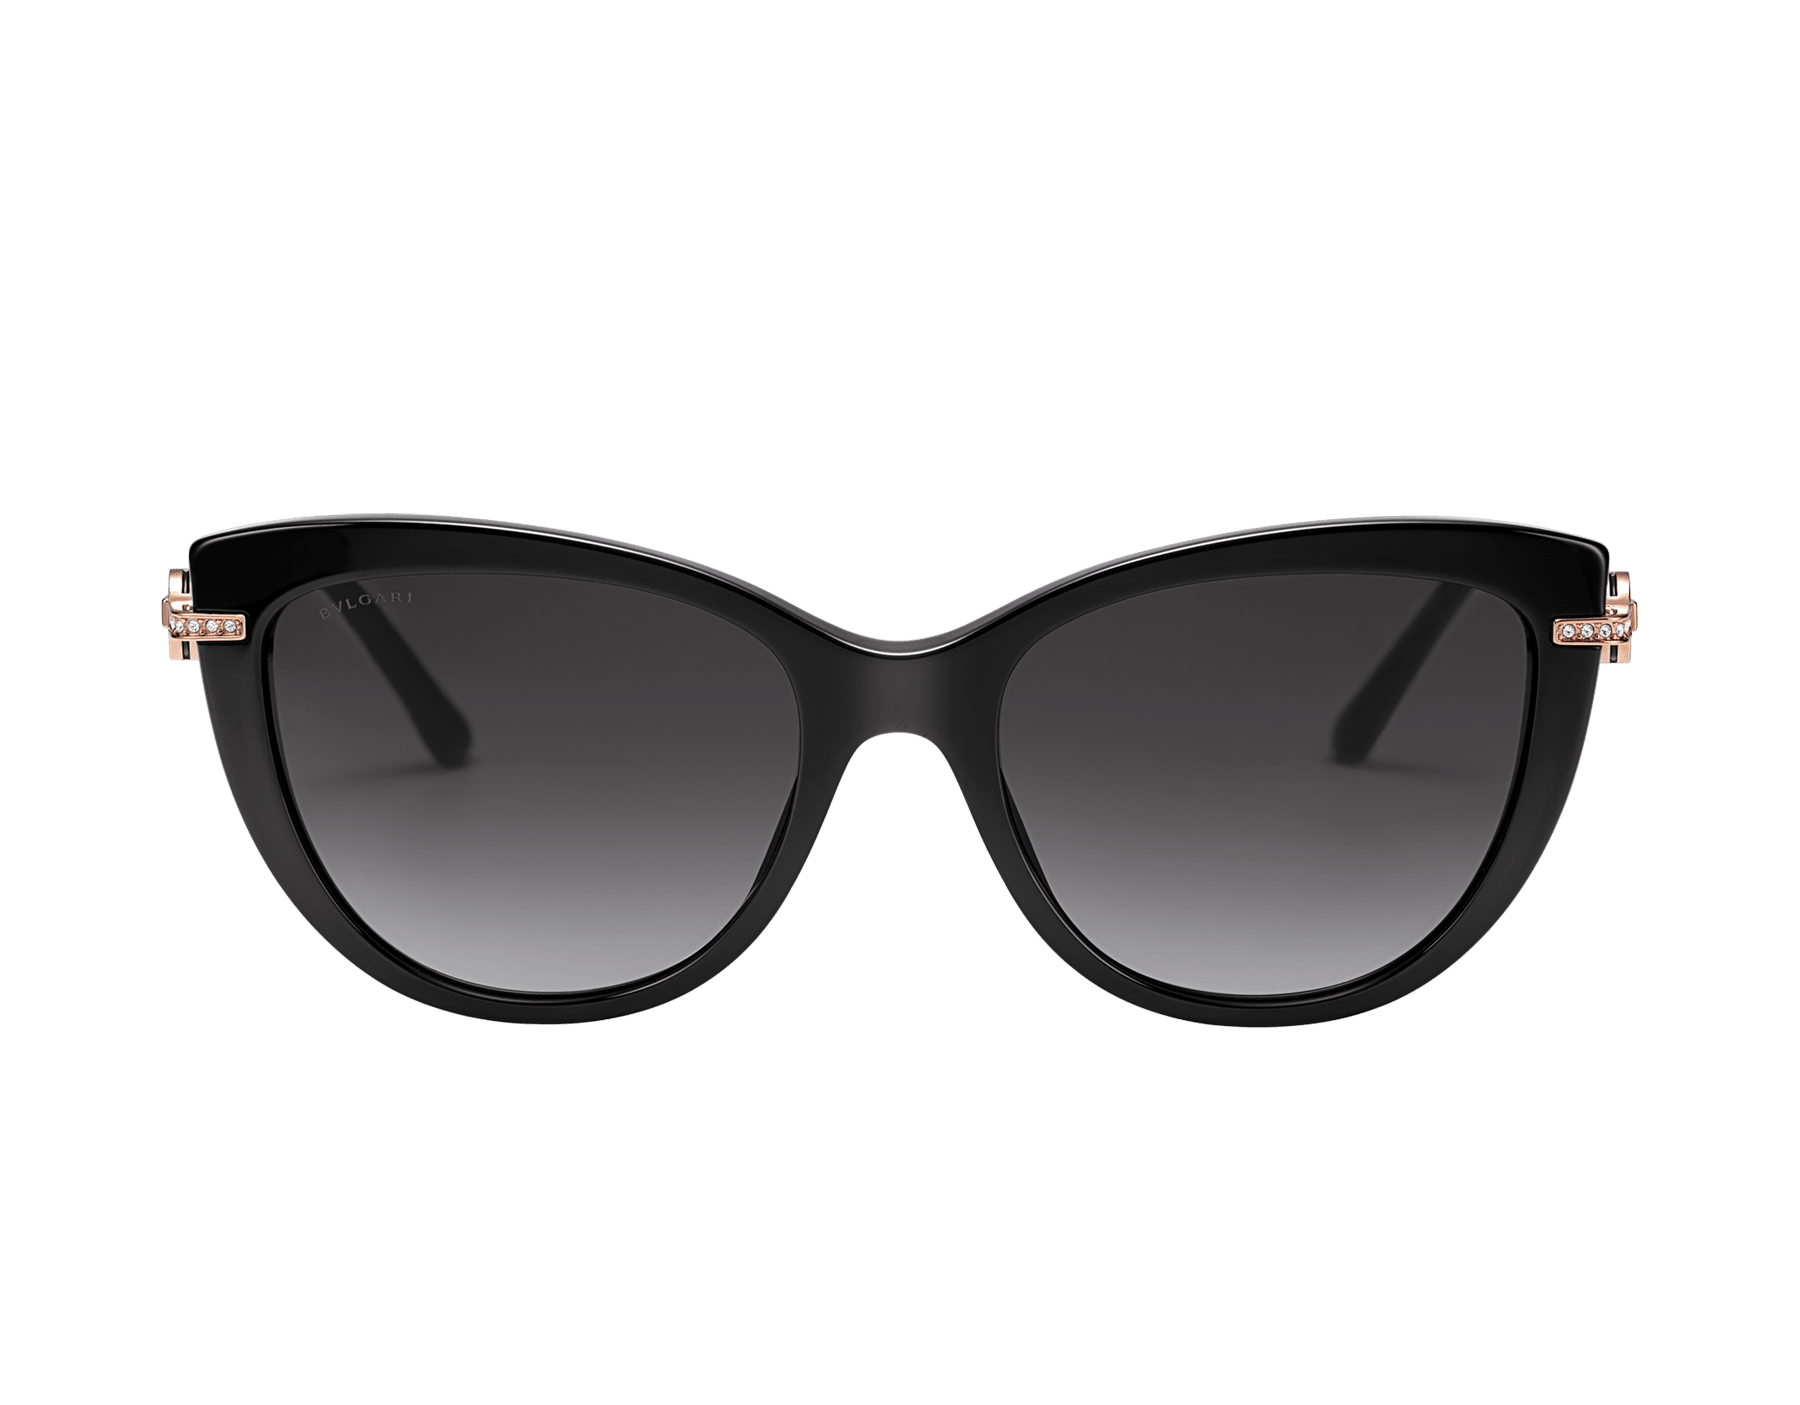 BVLGARI BVLGARI cat-eye acetate sunglasses with metal décor and crystals. 903800 image 2